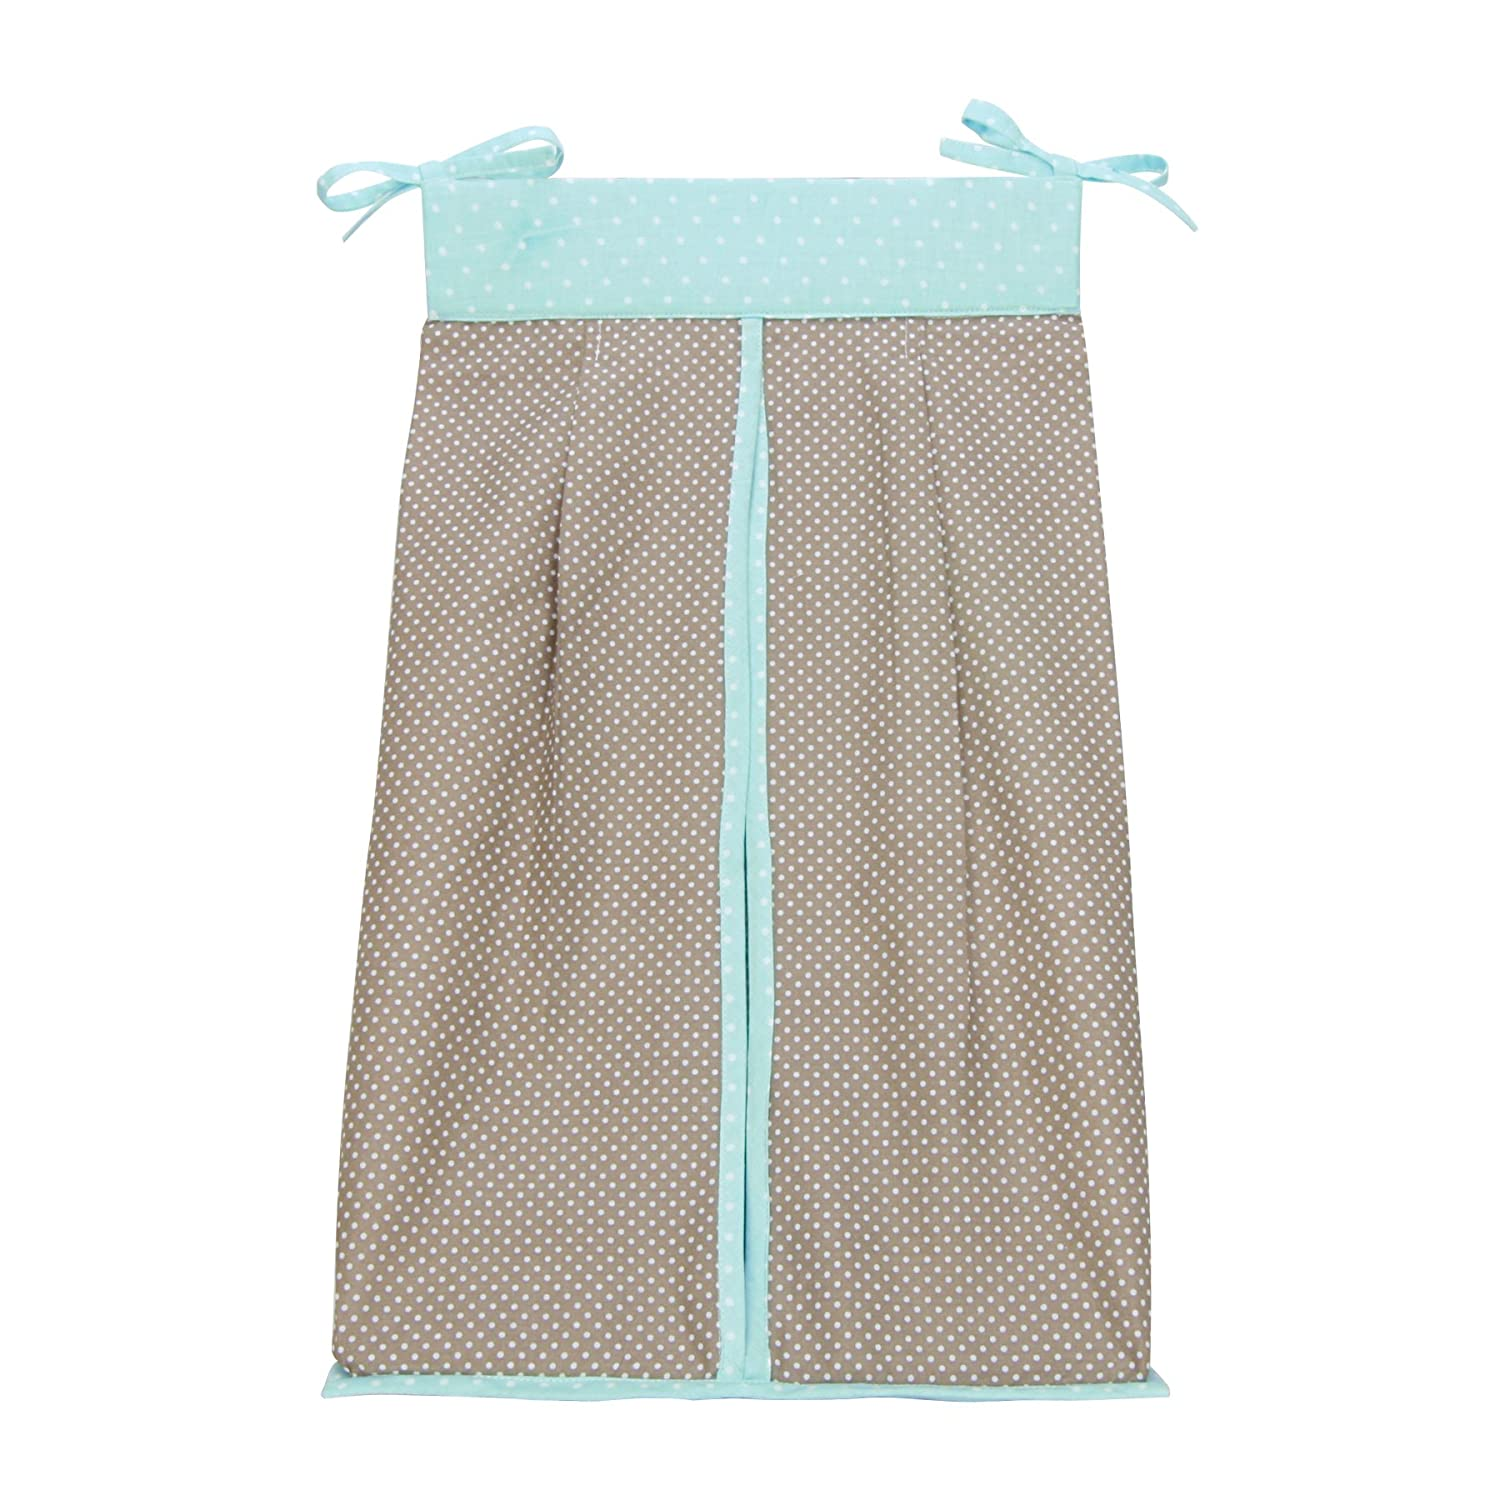 Trend Lab Cocoa Mint Diaper Stacker, Taupe 110202